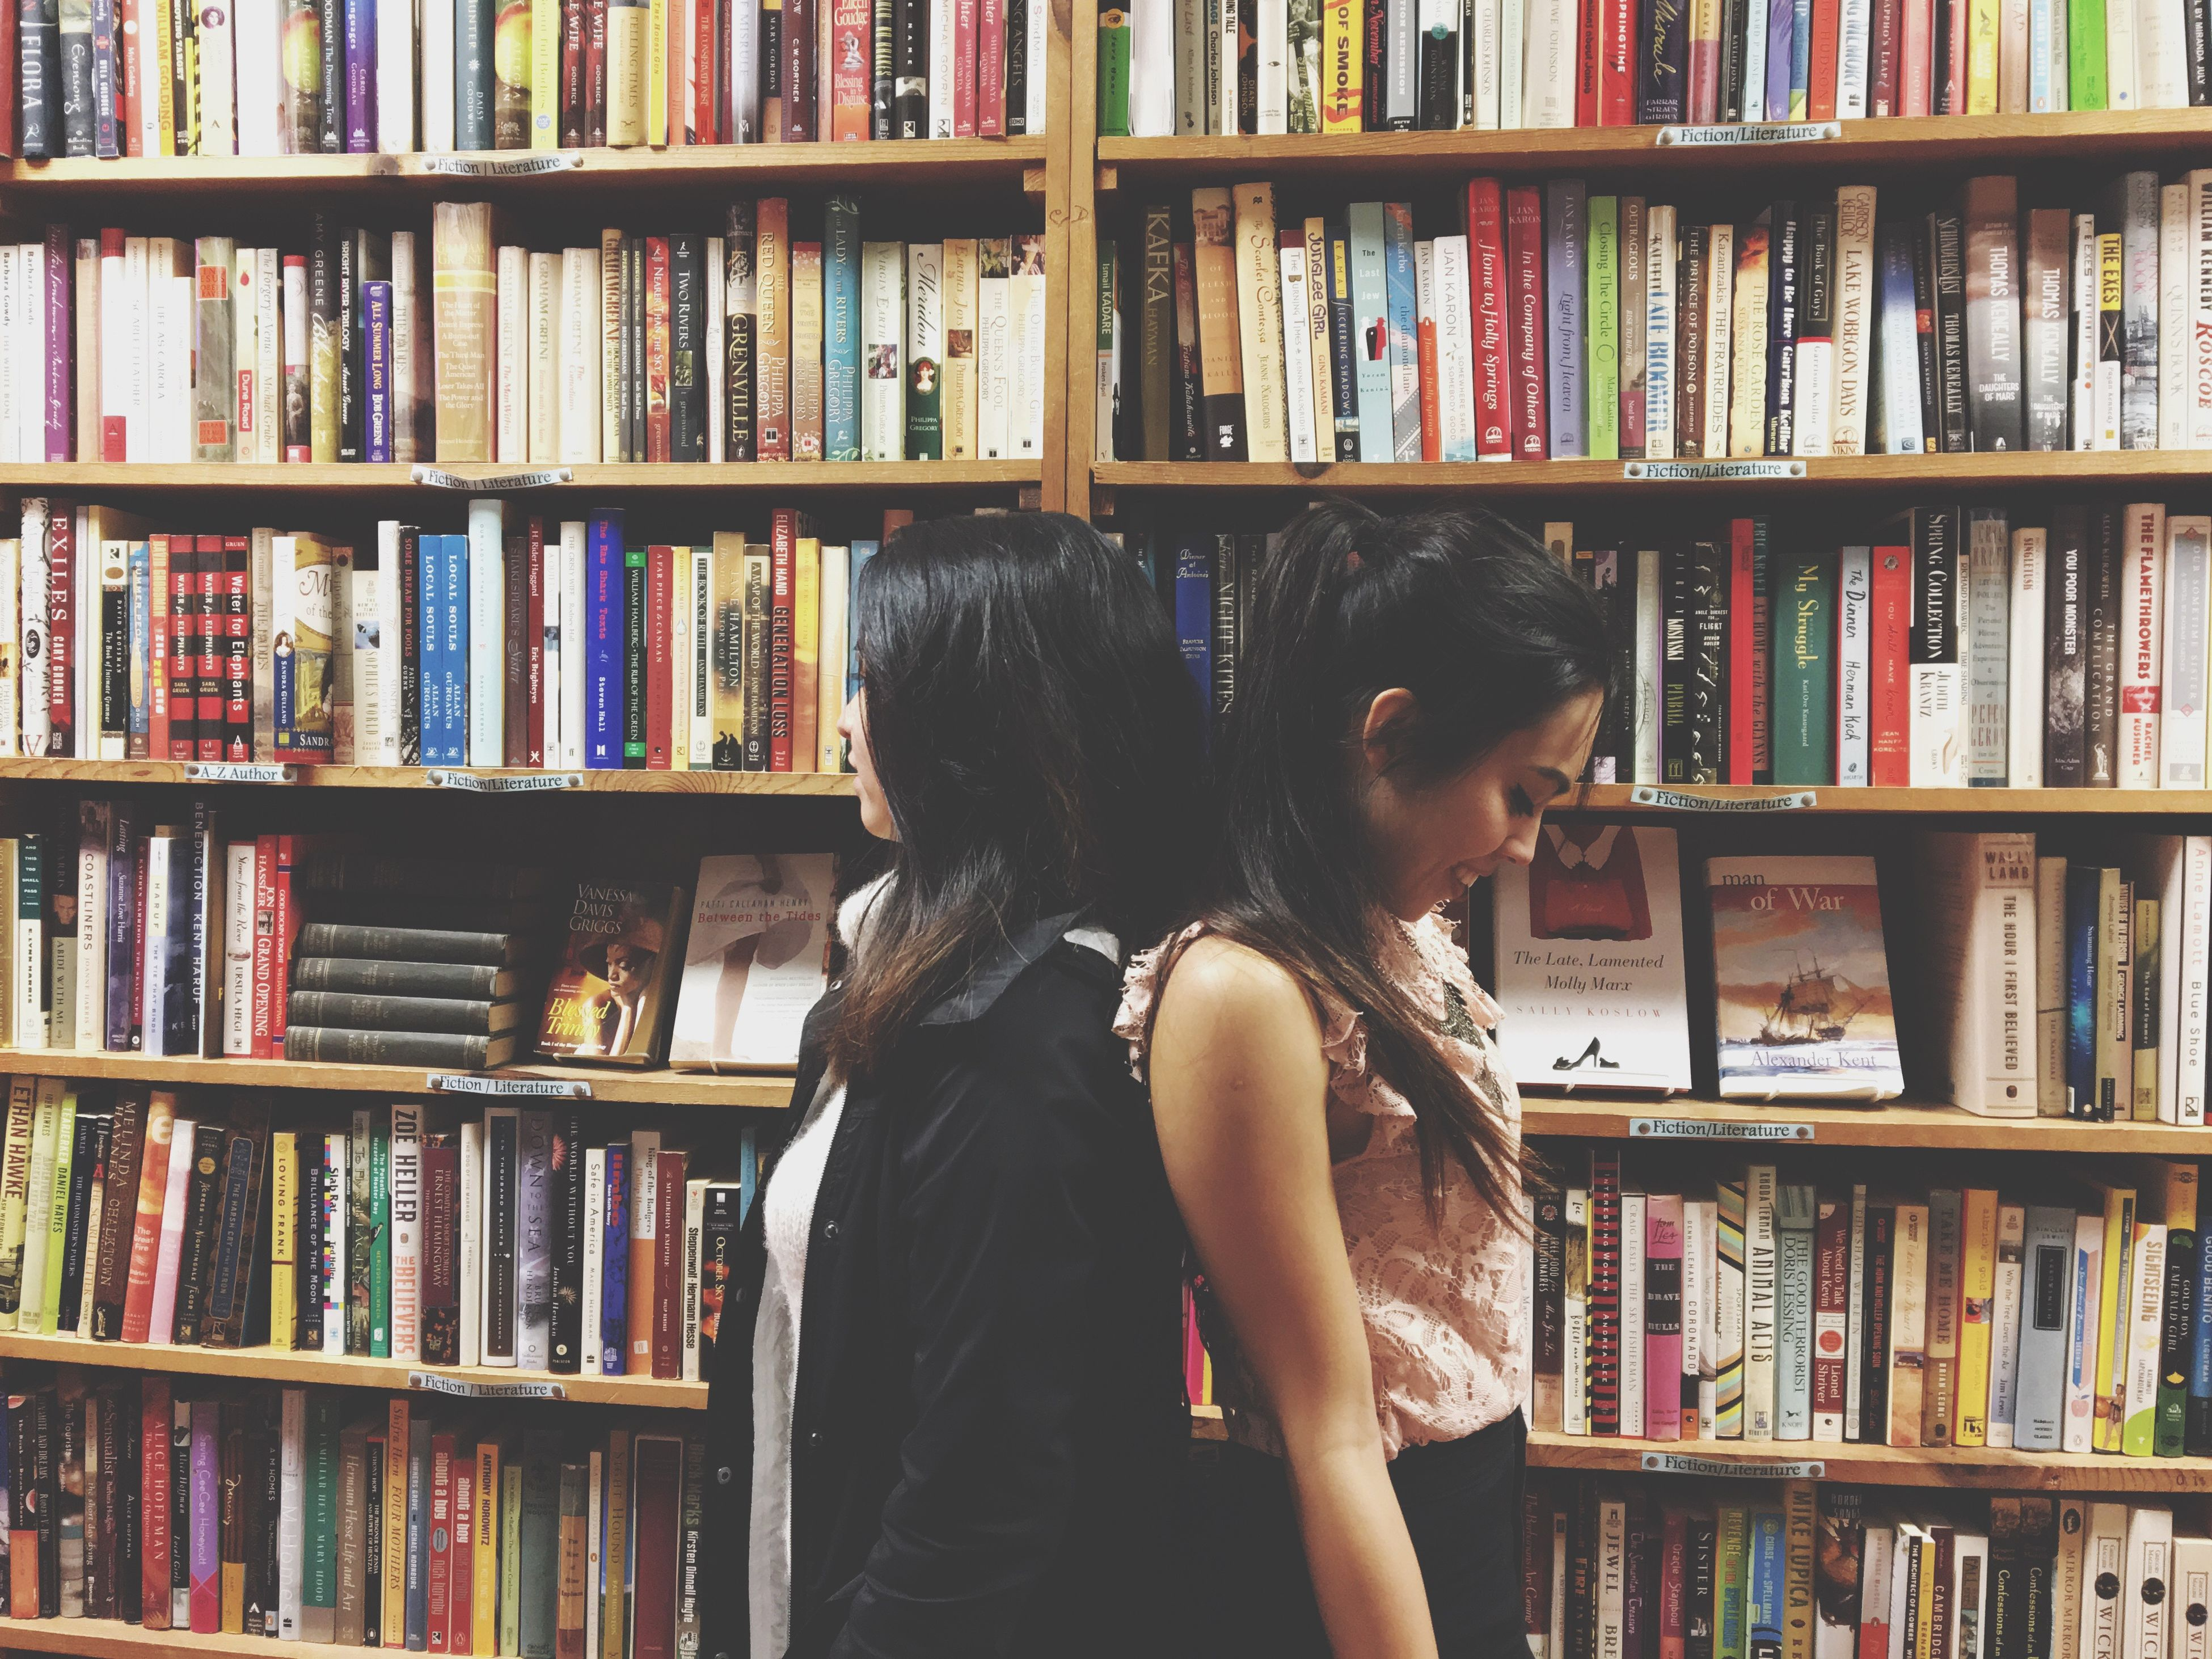 bookshelf, book, shelf, library, indoors, one person, young adult, large group of objects, education, adults only, people, only women, one woman only, young women, choice, one young woman only, bookstore, adult, day